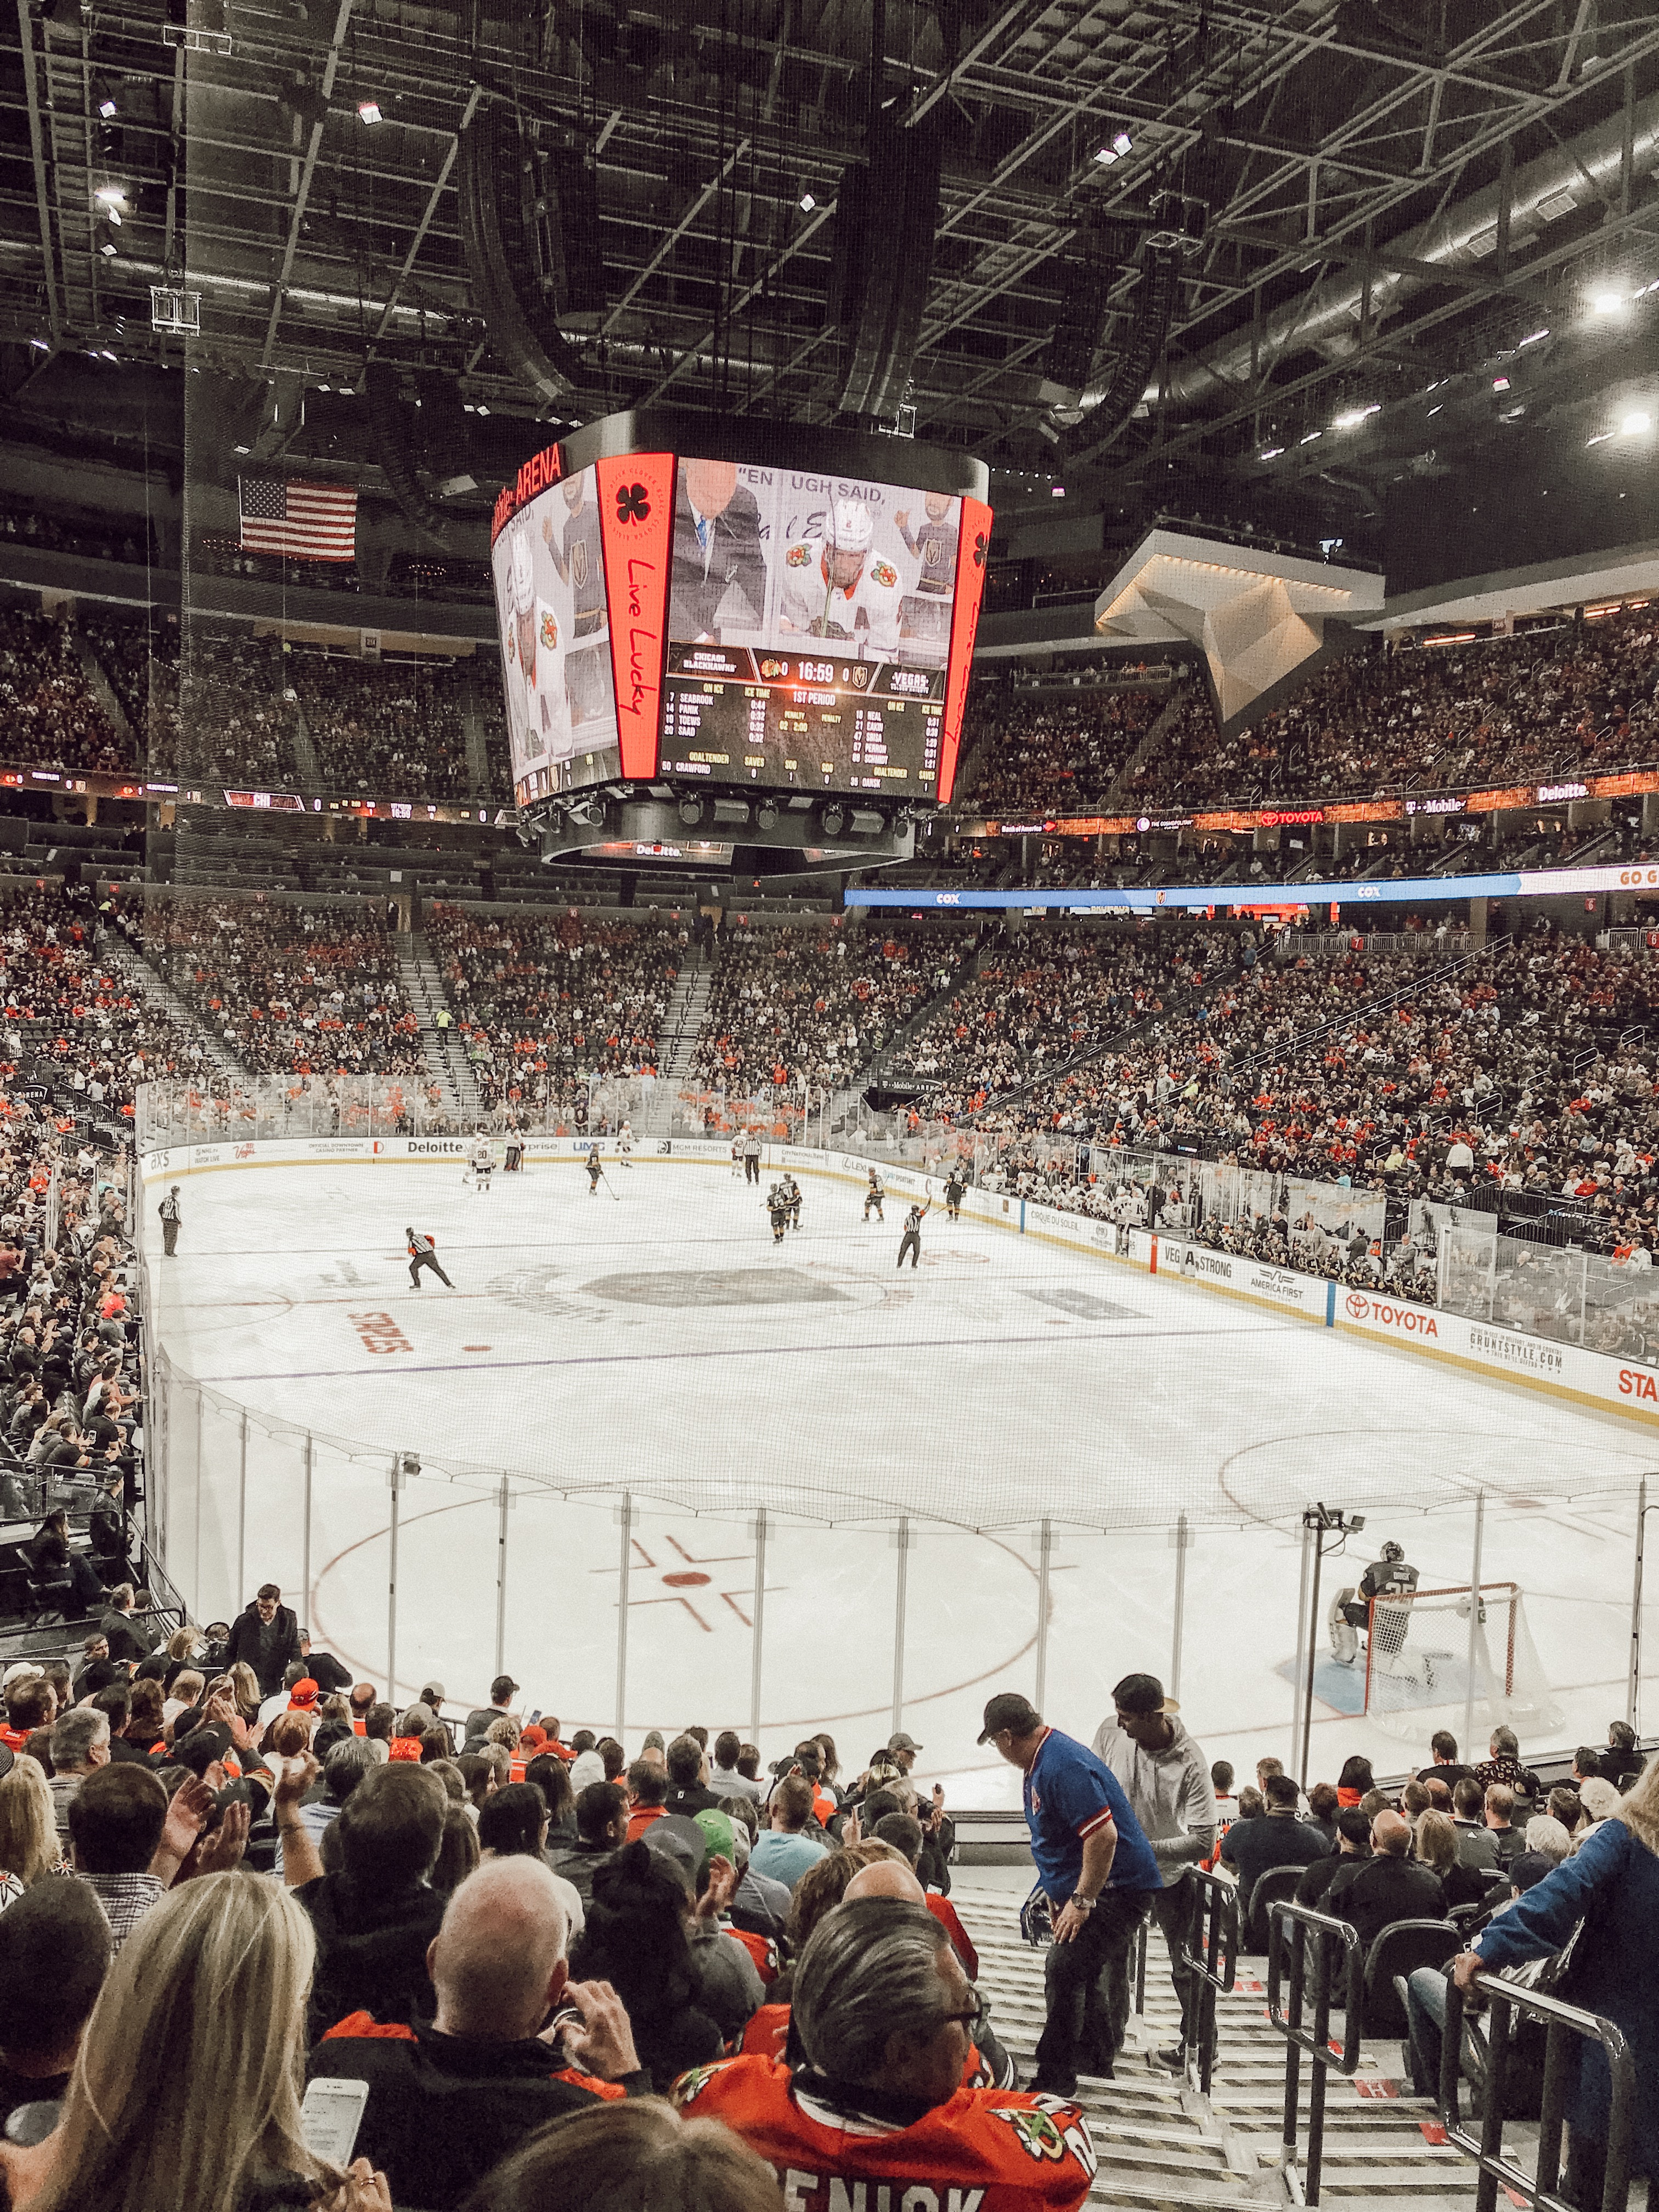 Golden Knights Hockey Game in the T Mobile Arena in Las Vegas